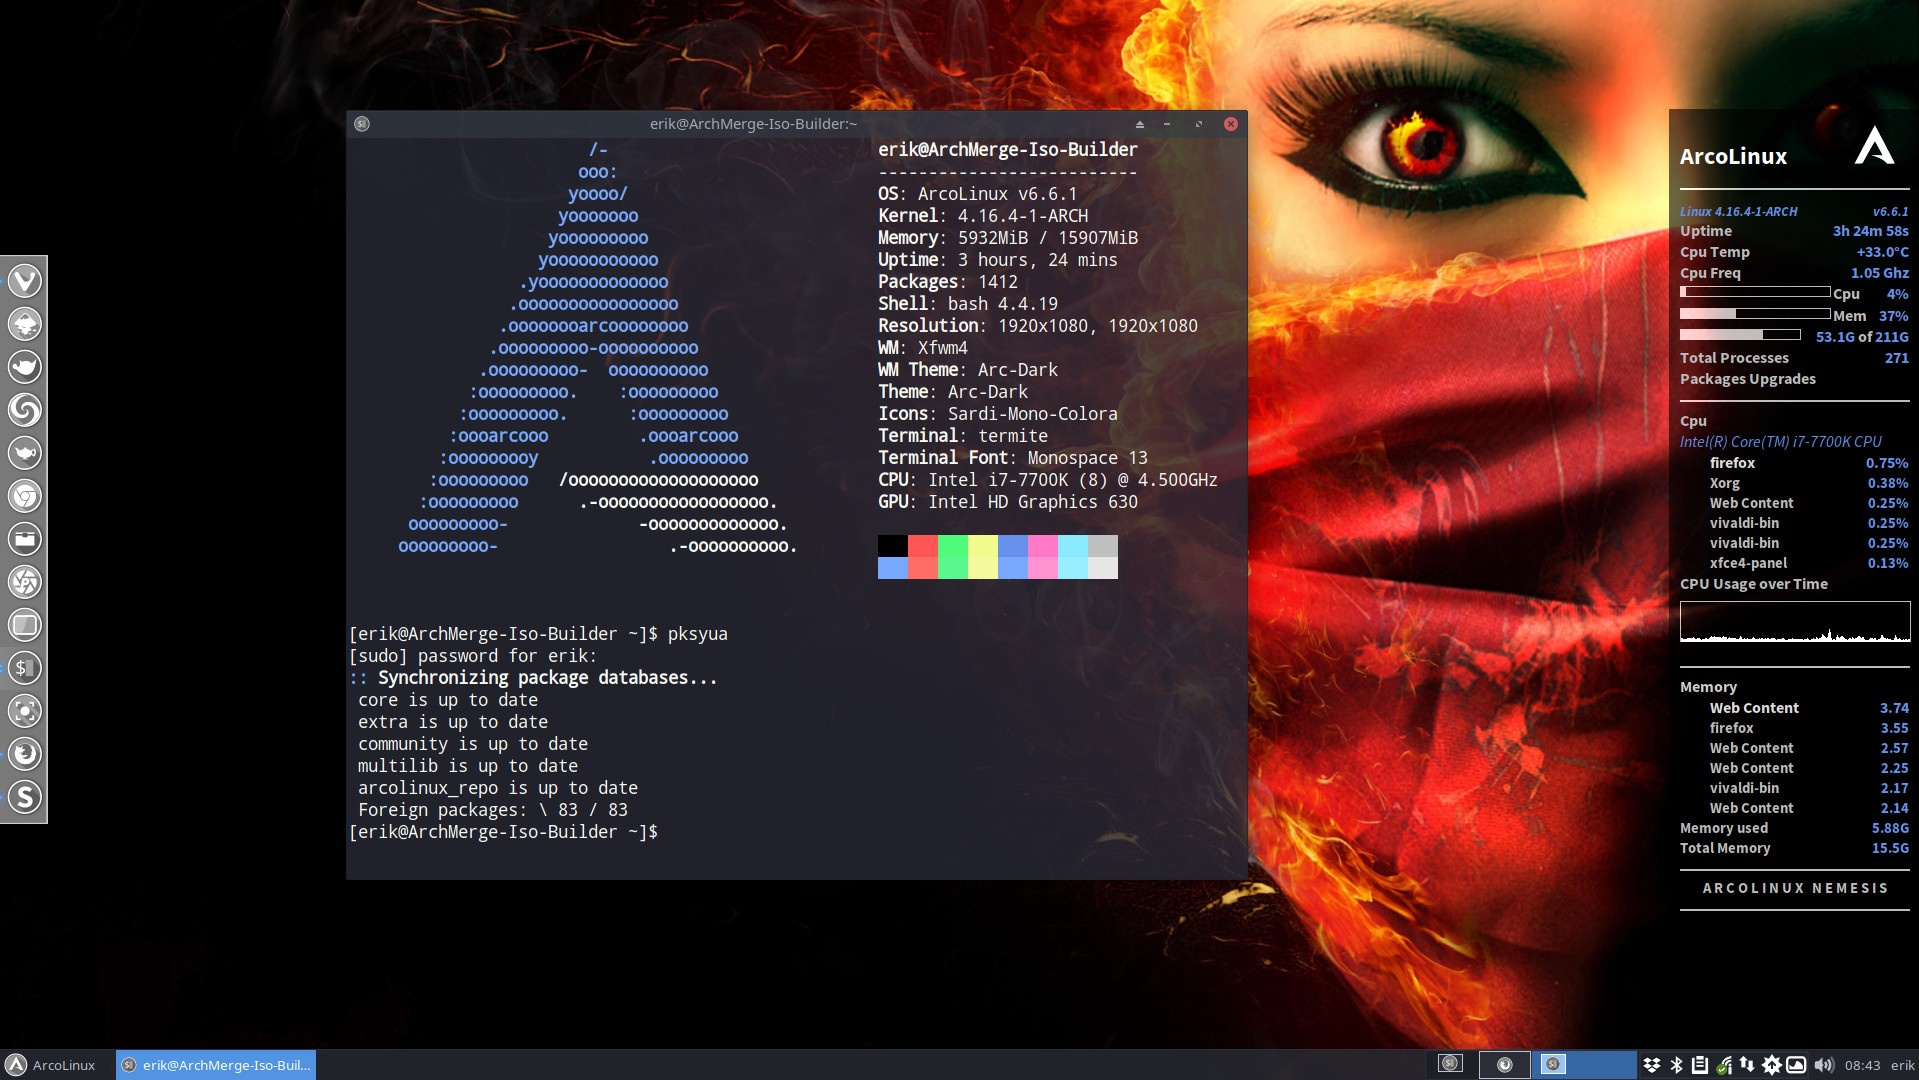 Update your system using the terminal and upall or pksyua